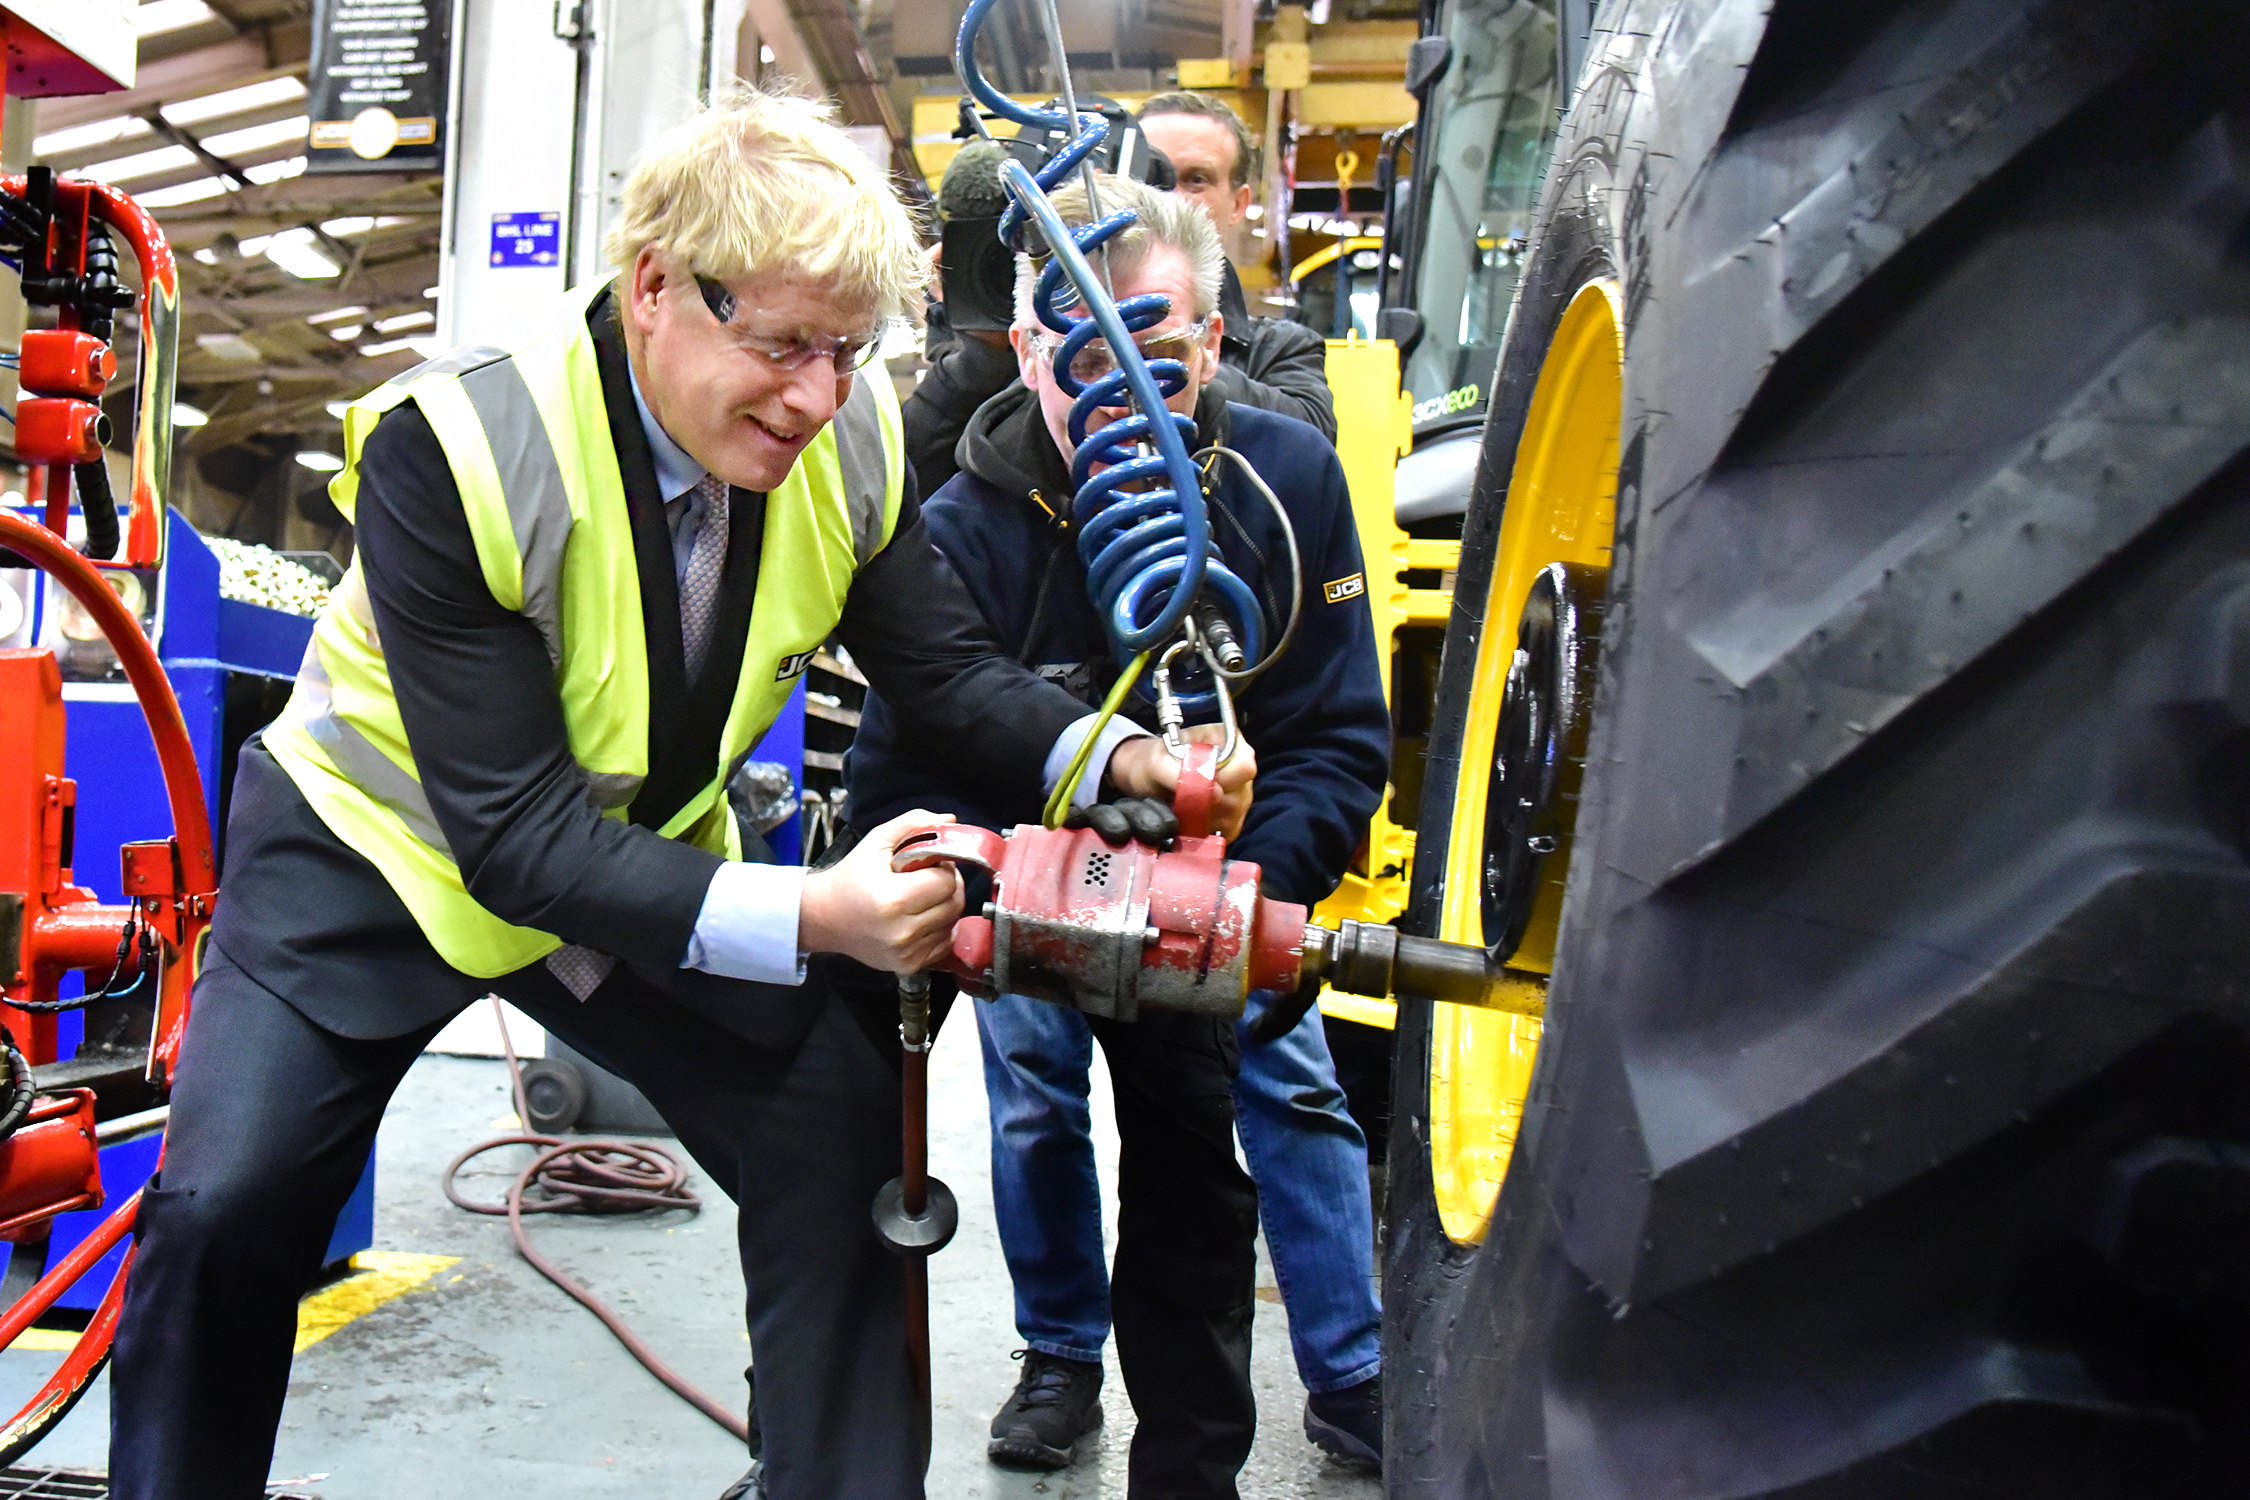 Boris Johnson MP at JCB in January 2019